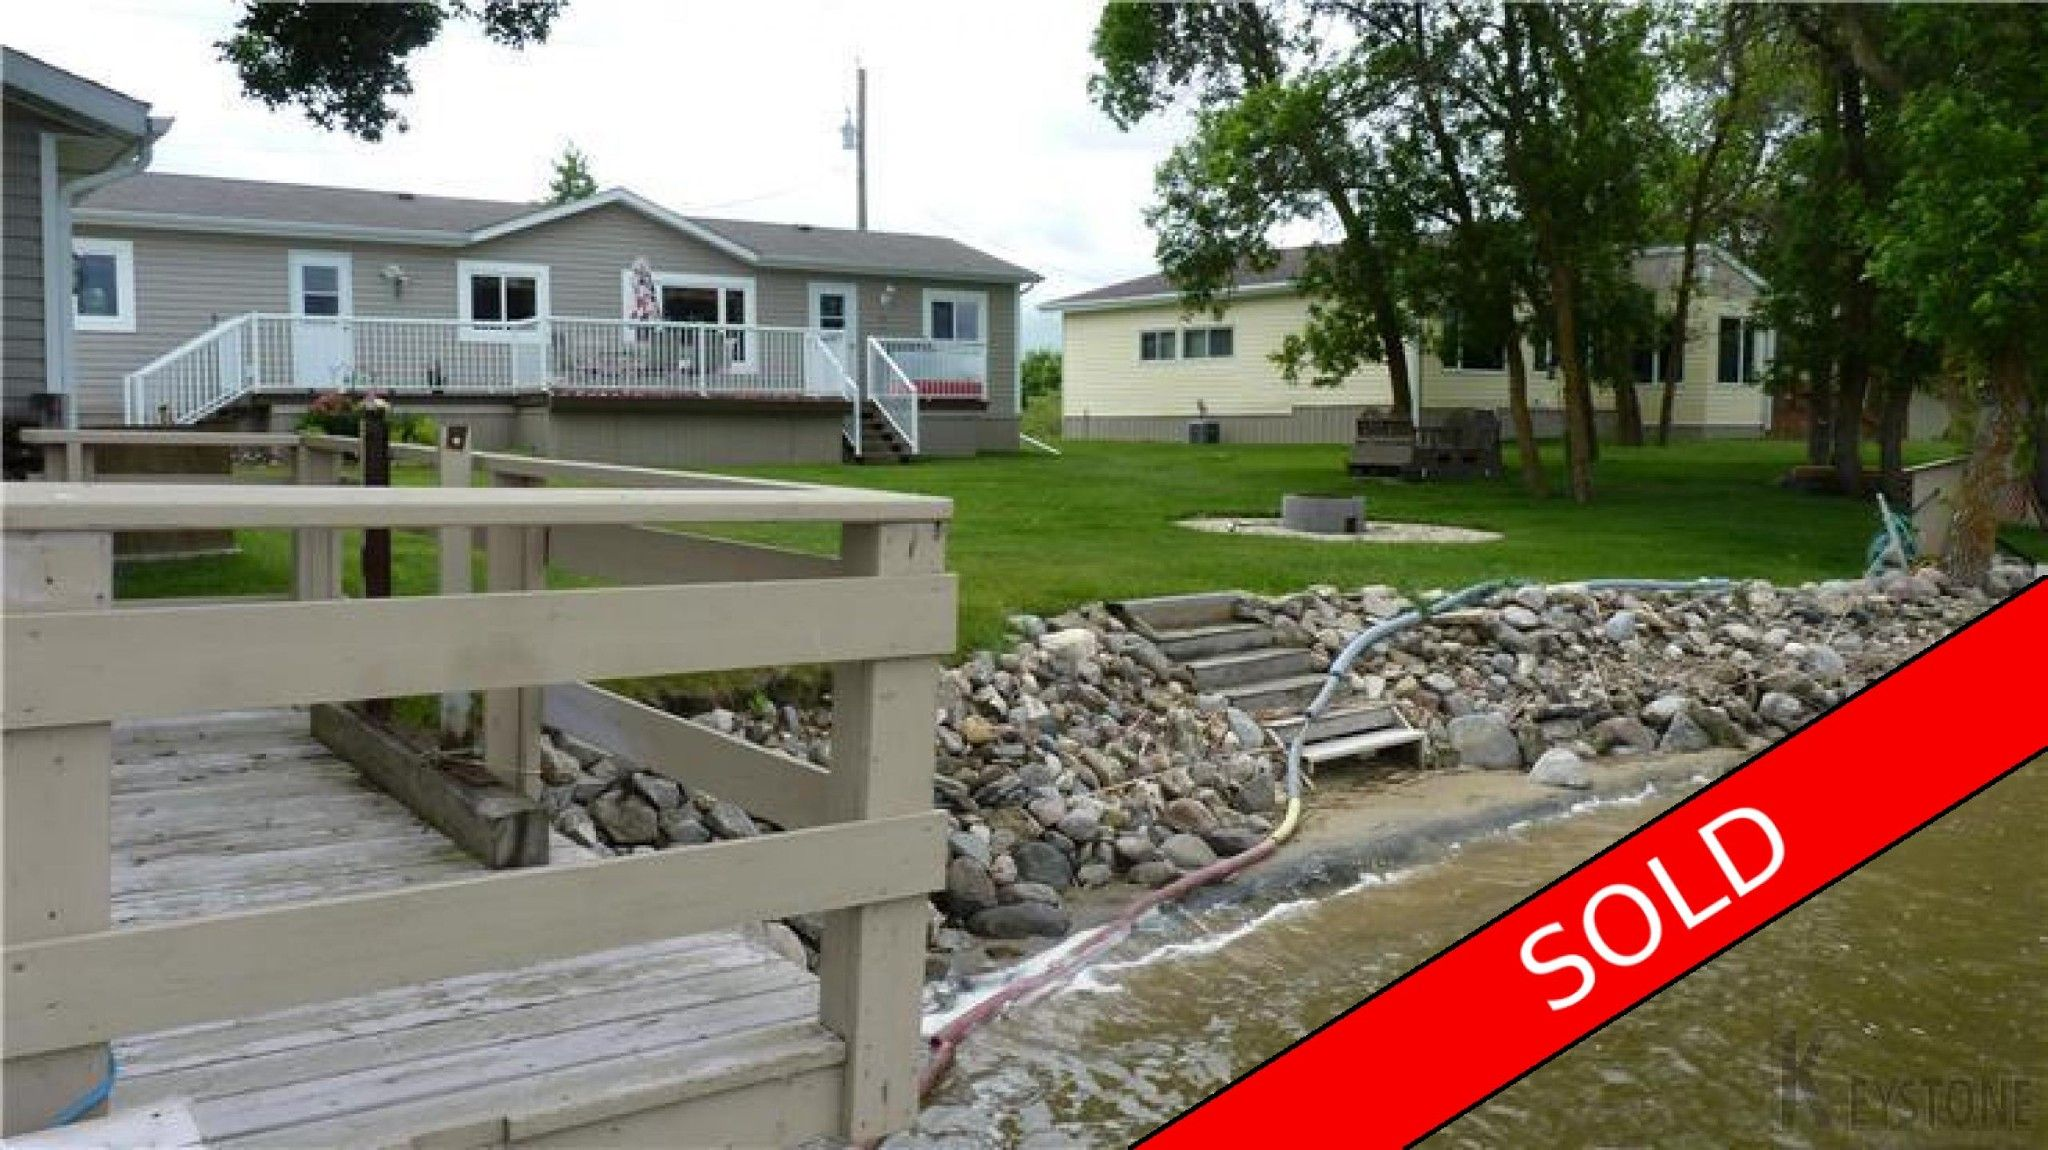 Main Photo: 21 Patricia Drive in Petersfield, MB r1a2b2: House for sale : MLS®# 1715785